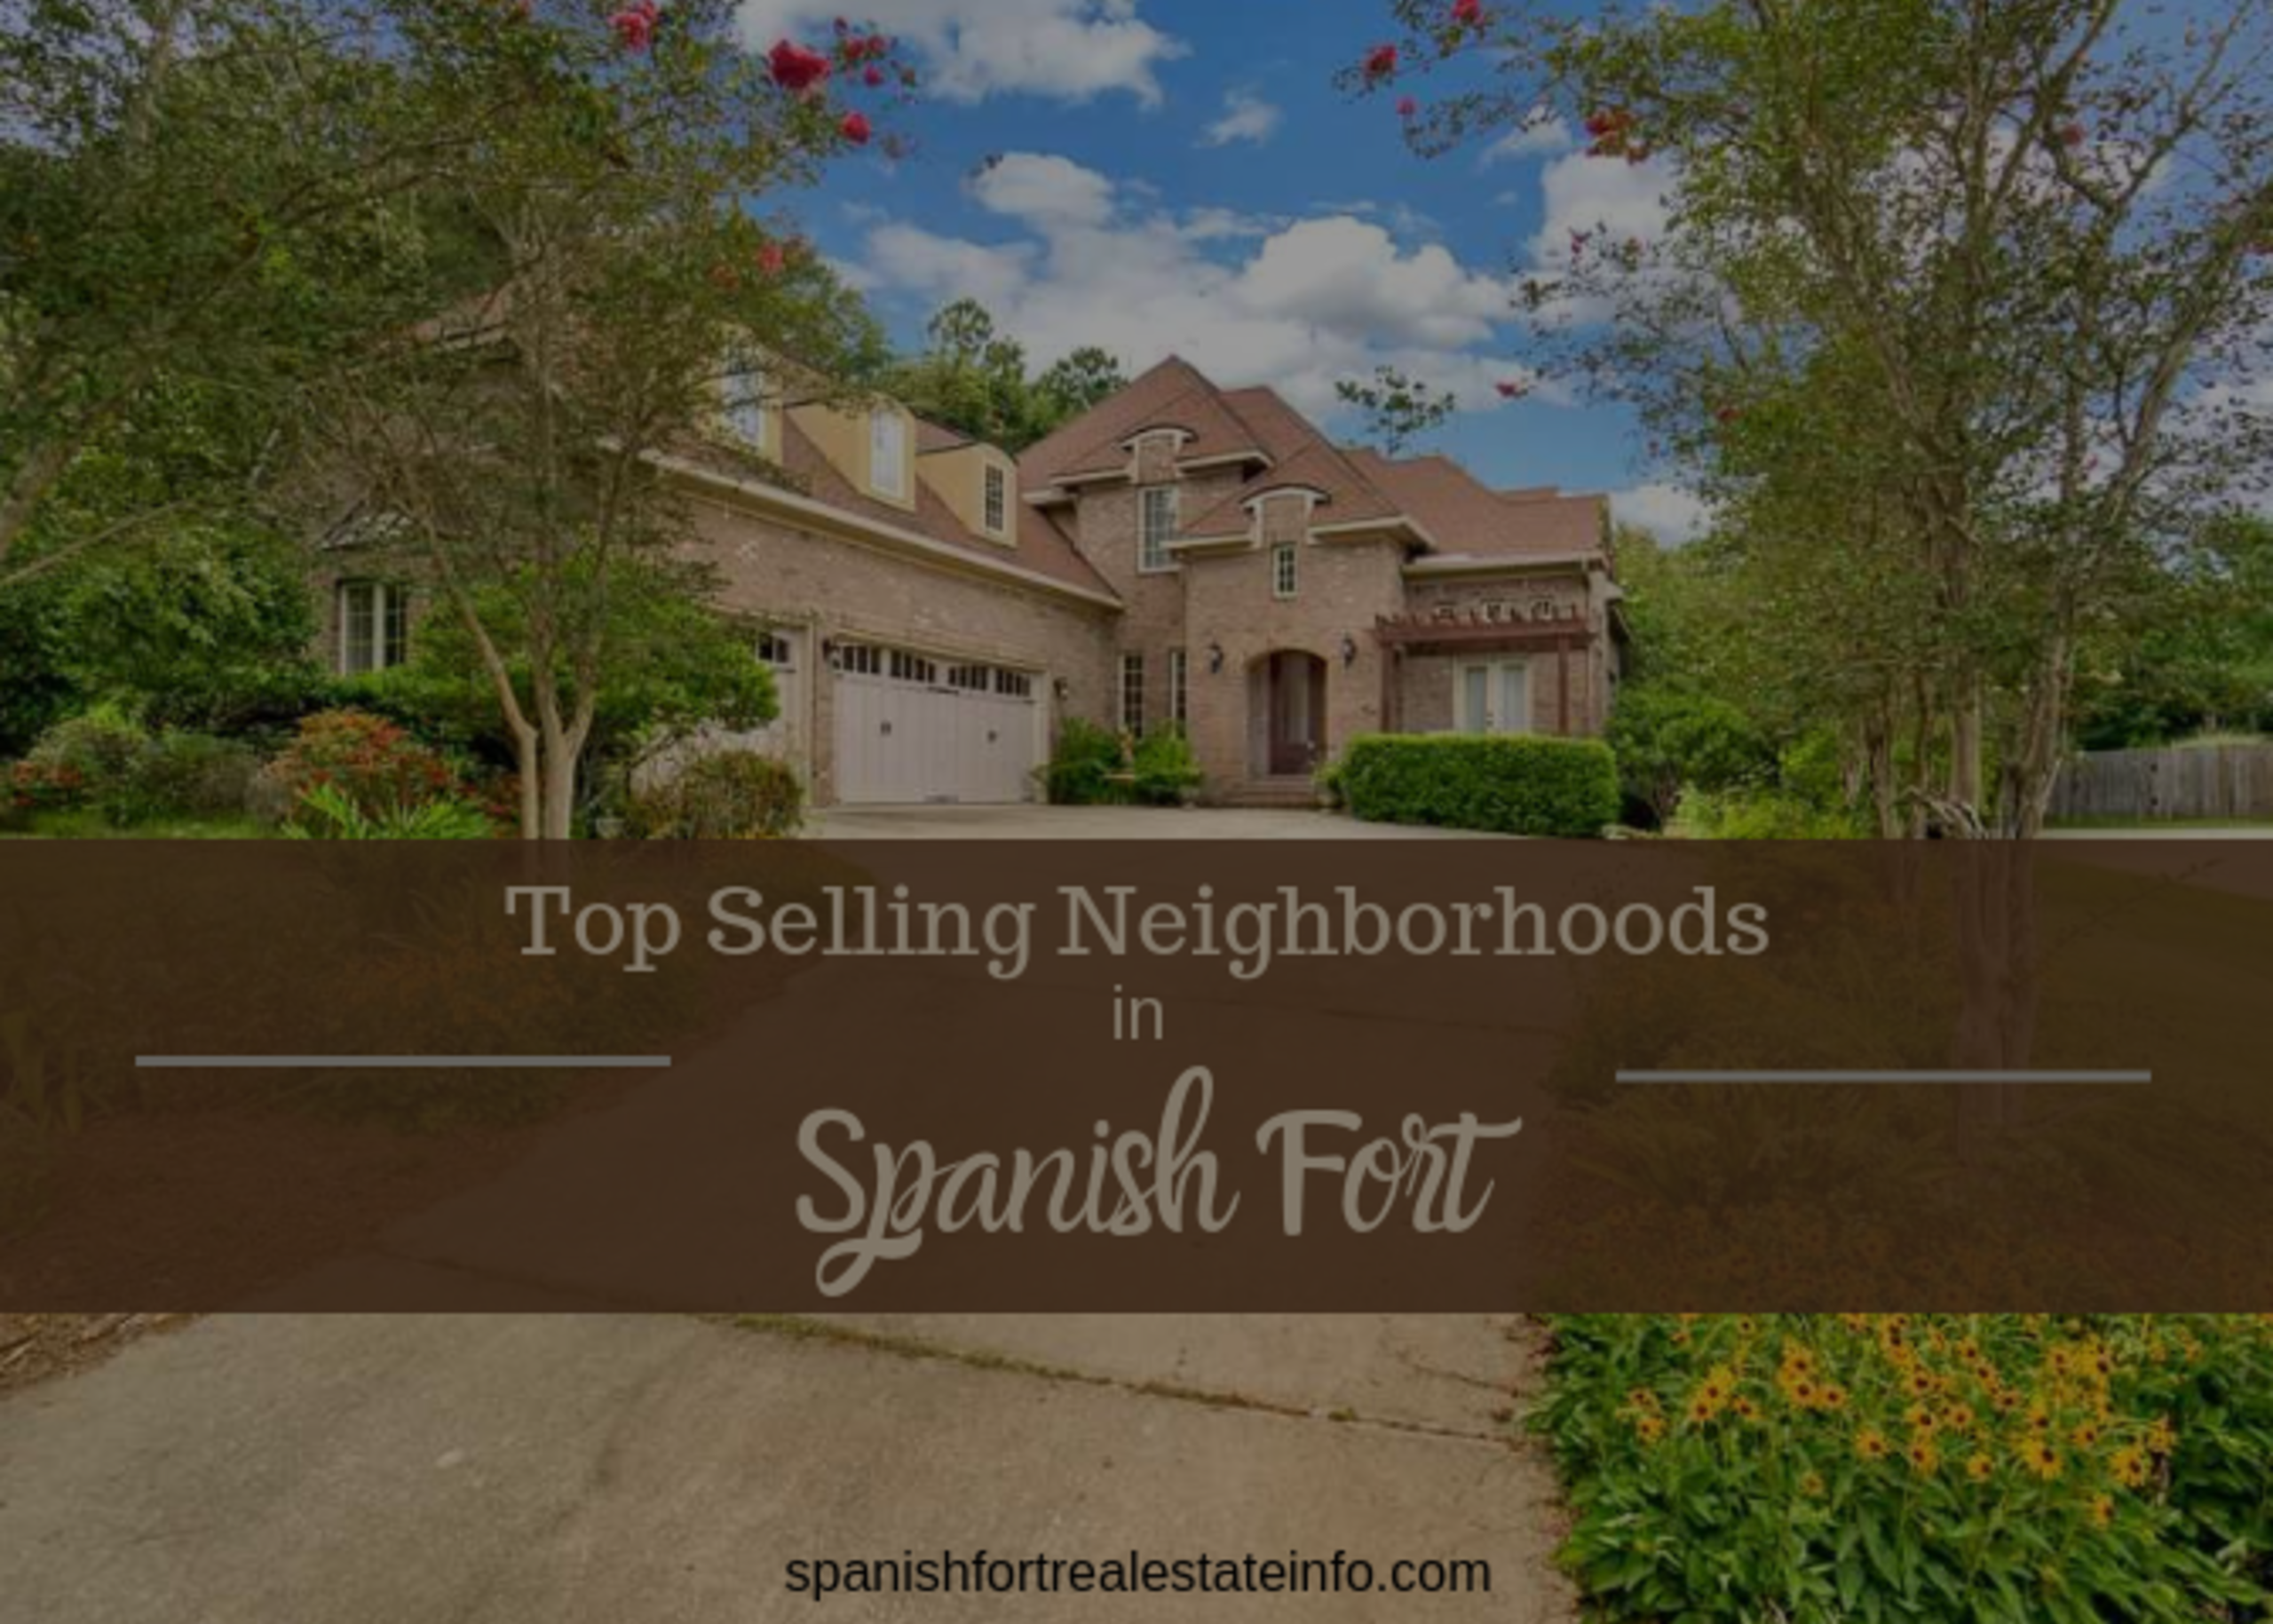 Top Selling Neighborhoods in Spanish Fort – August 2019